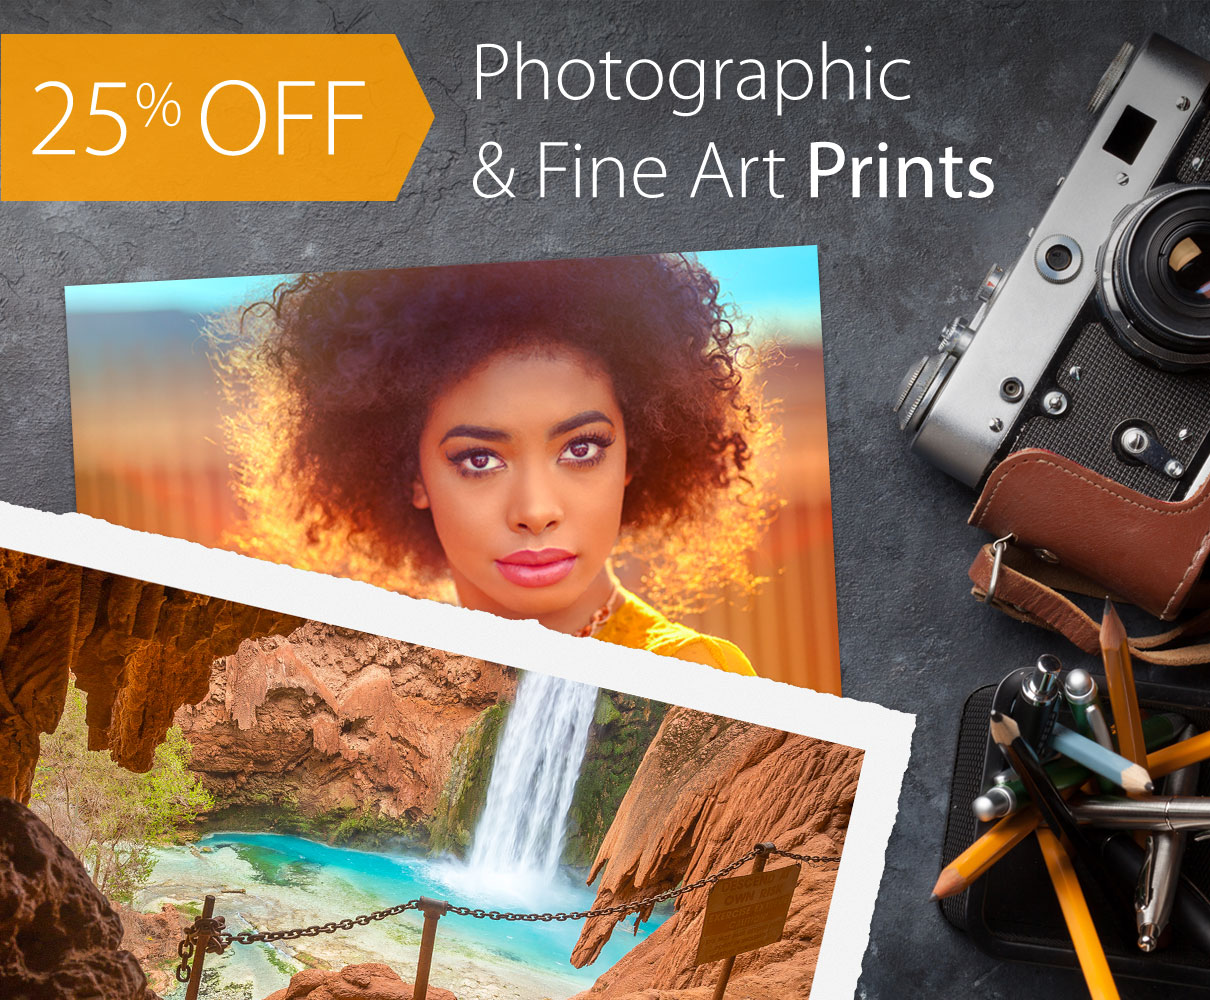 25% Off% Off Photographic Prints!